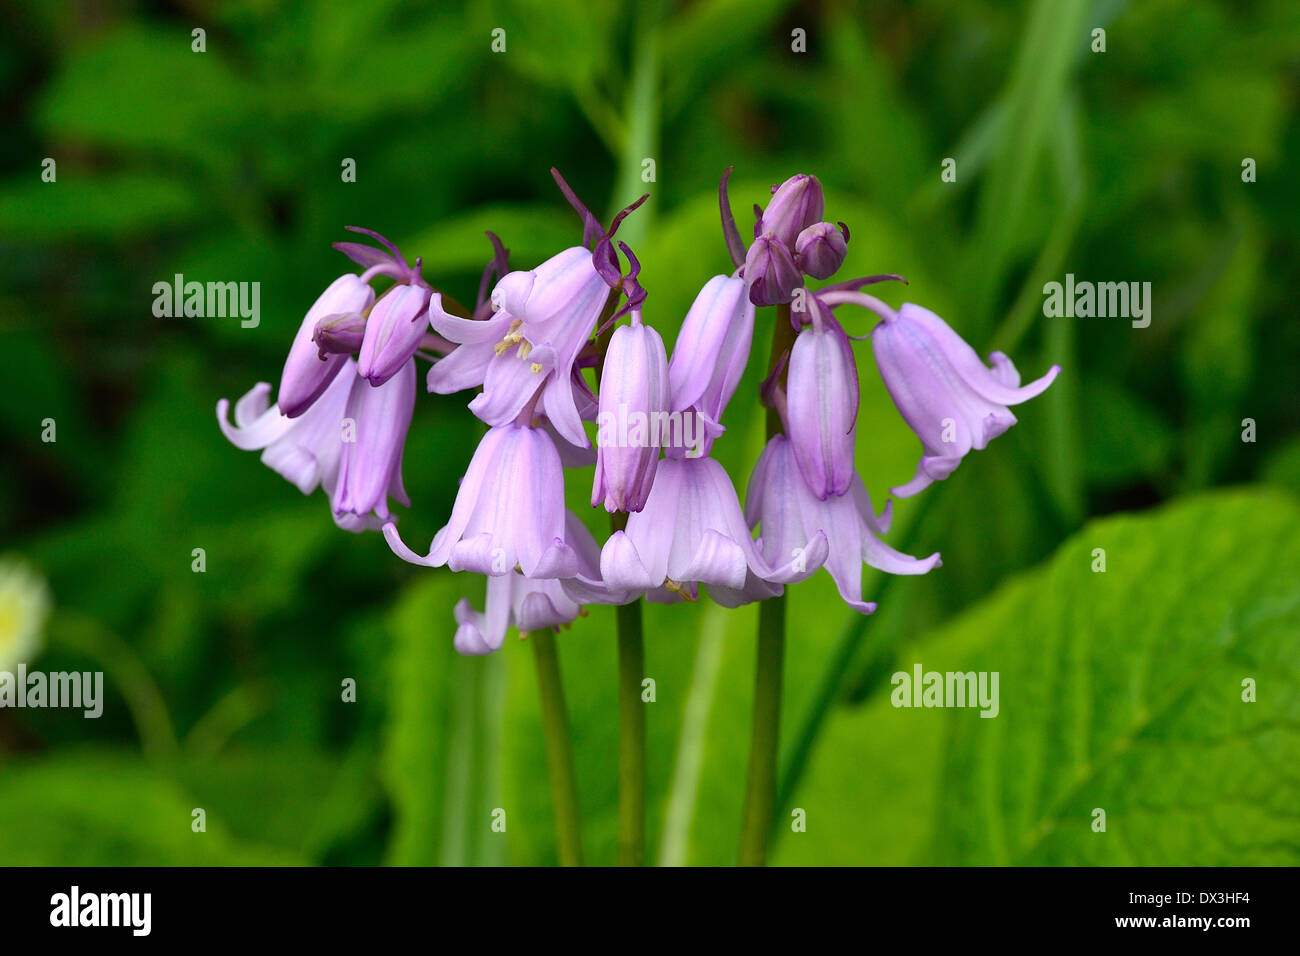 Spanish Bluebell (Hyacinthoïdes hispanica), in may, in a garden. - Stock Image